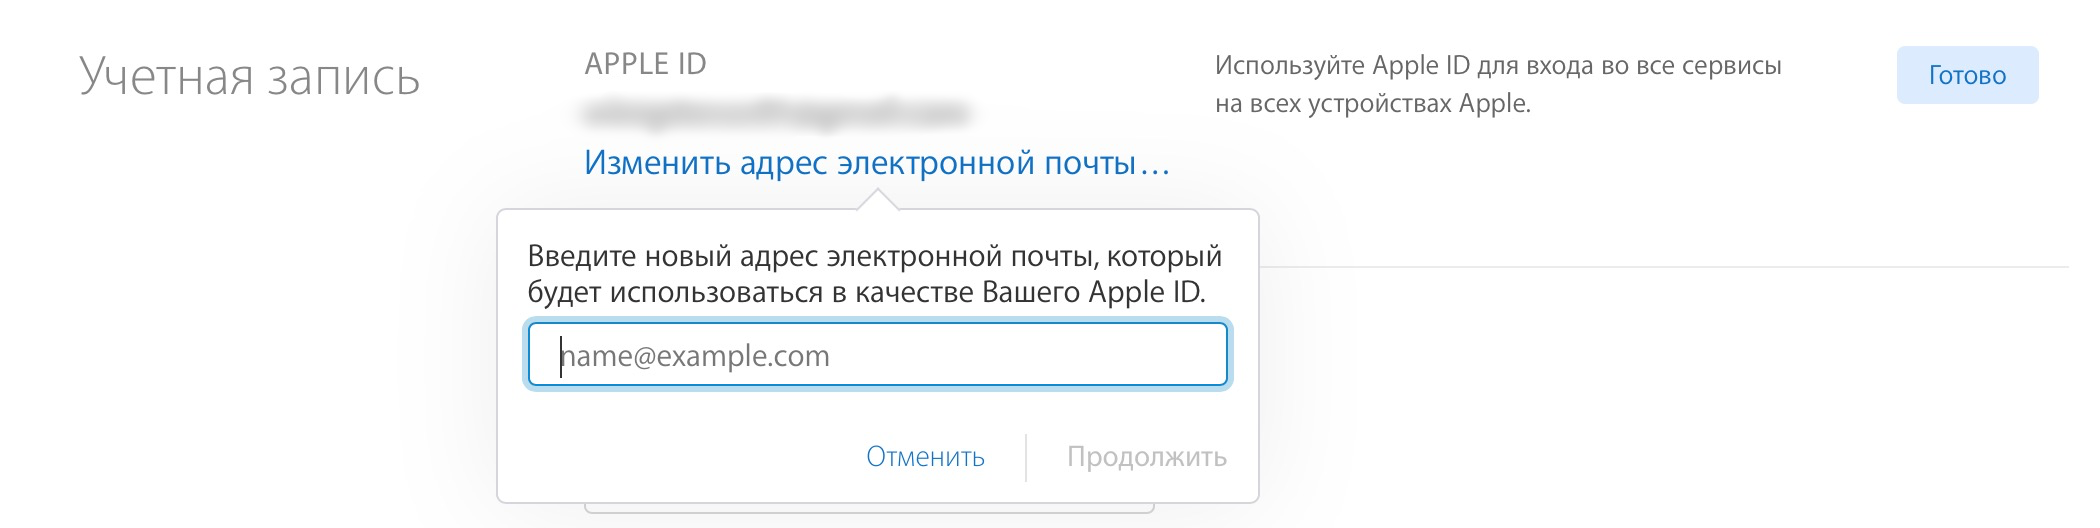 Как изменить привязанную почту к Apple ID